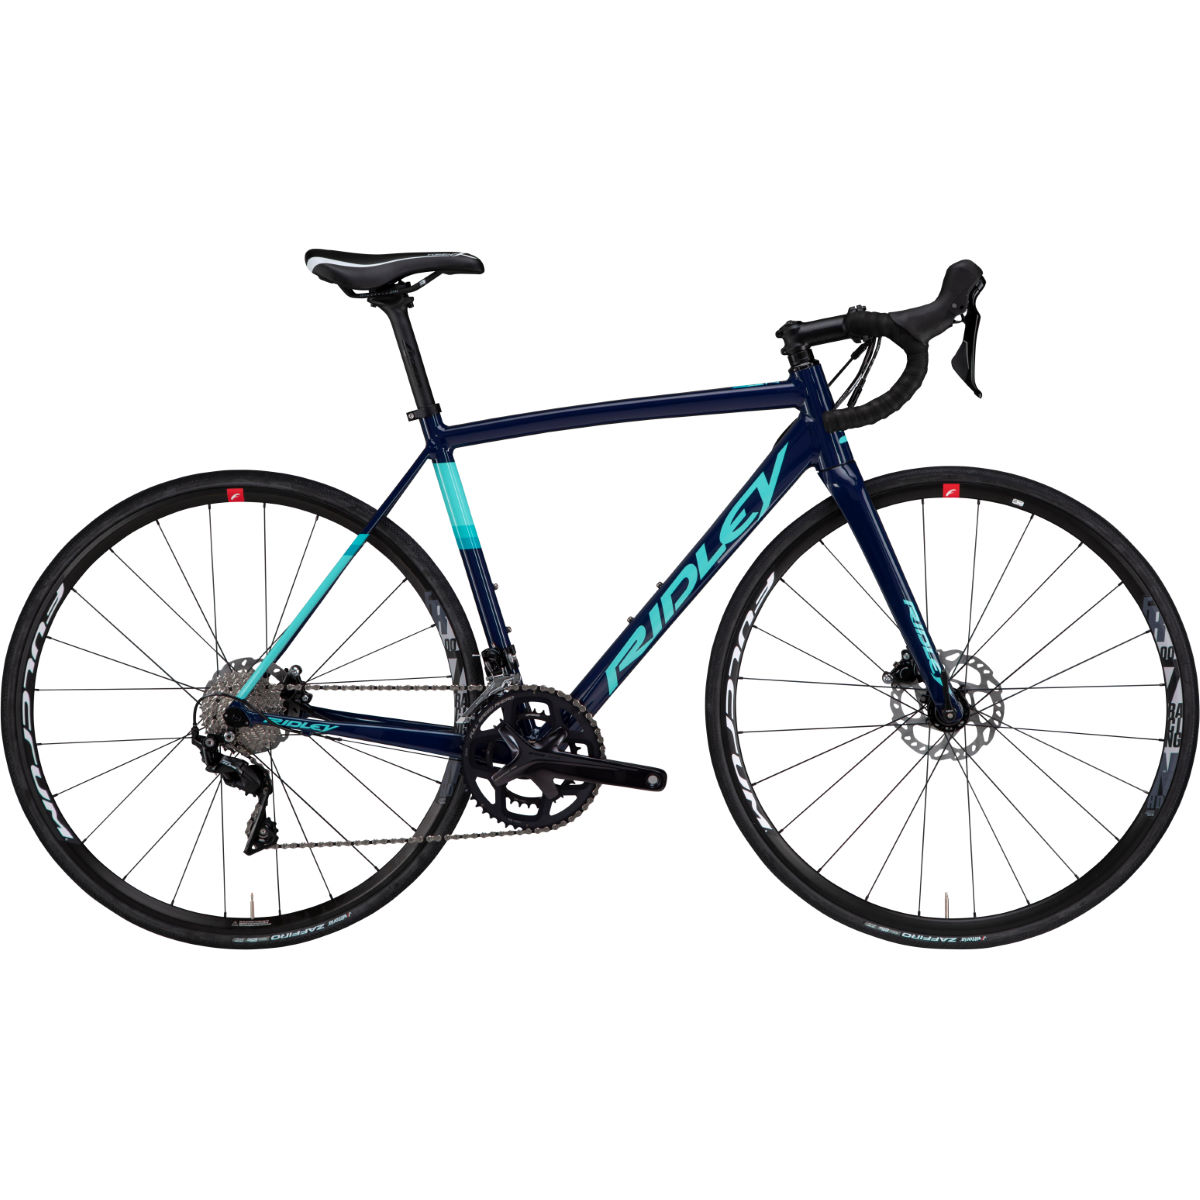 Ridley Liz SLA Disc 105 Mix Road Bike (2020) - Bicicletas de carretera